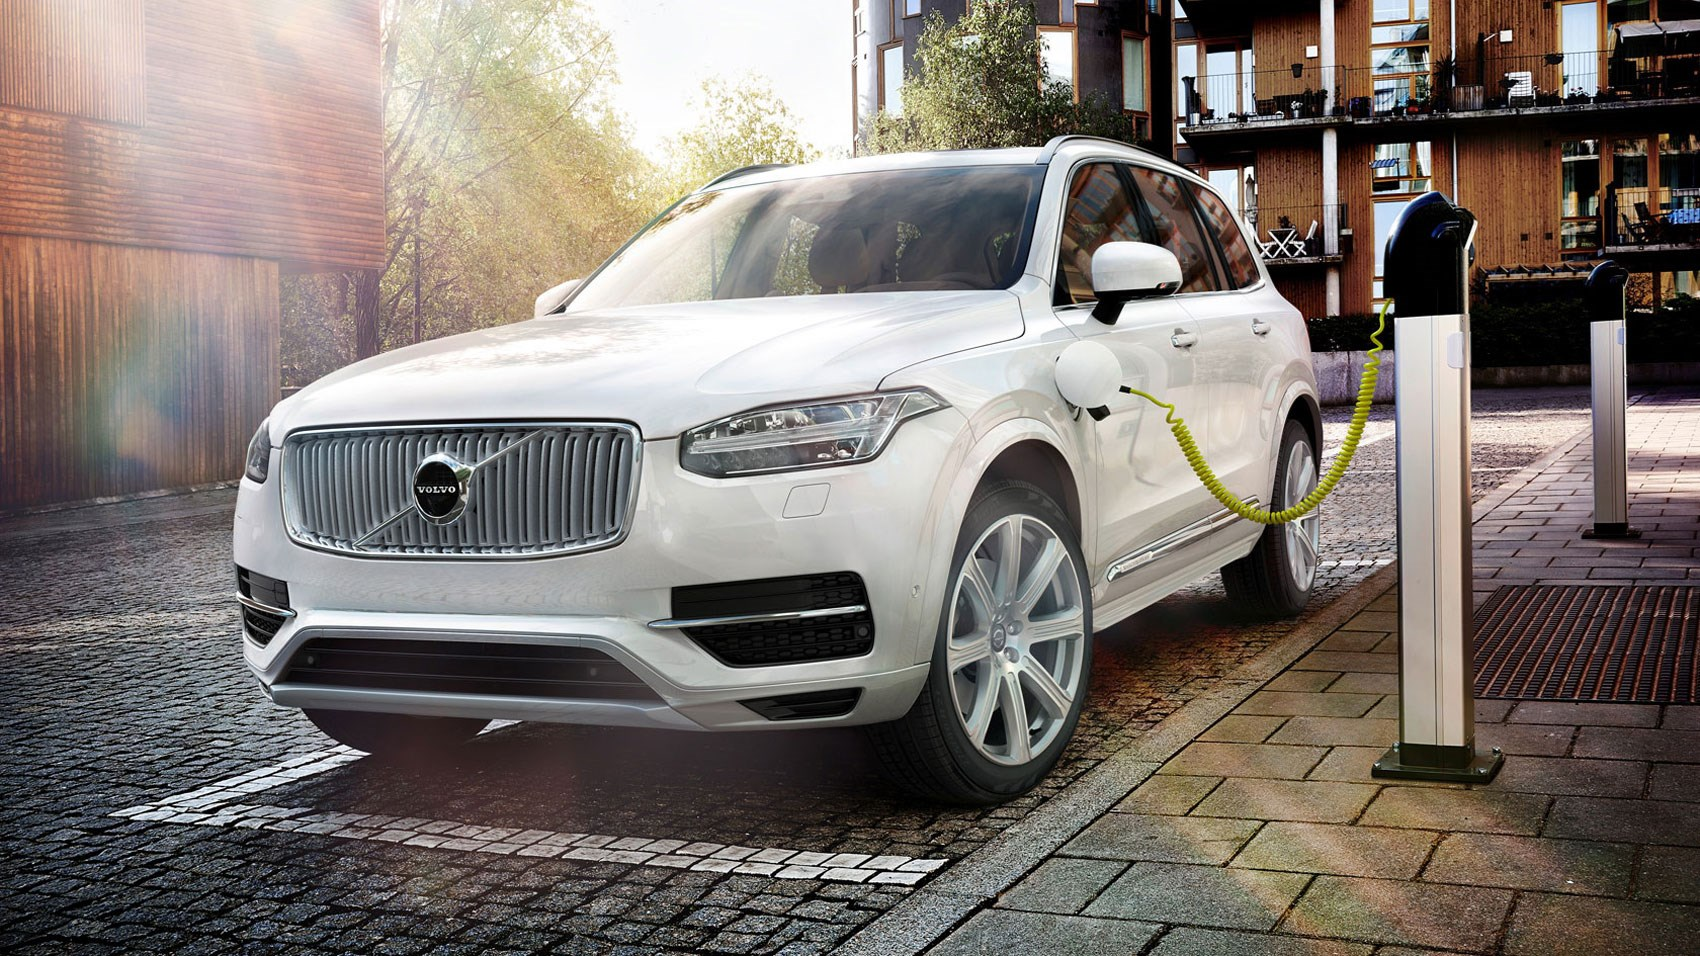 http://images.car.bauercdn.com/pagefiles/20706/volvoxc90_t8_4.jpg